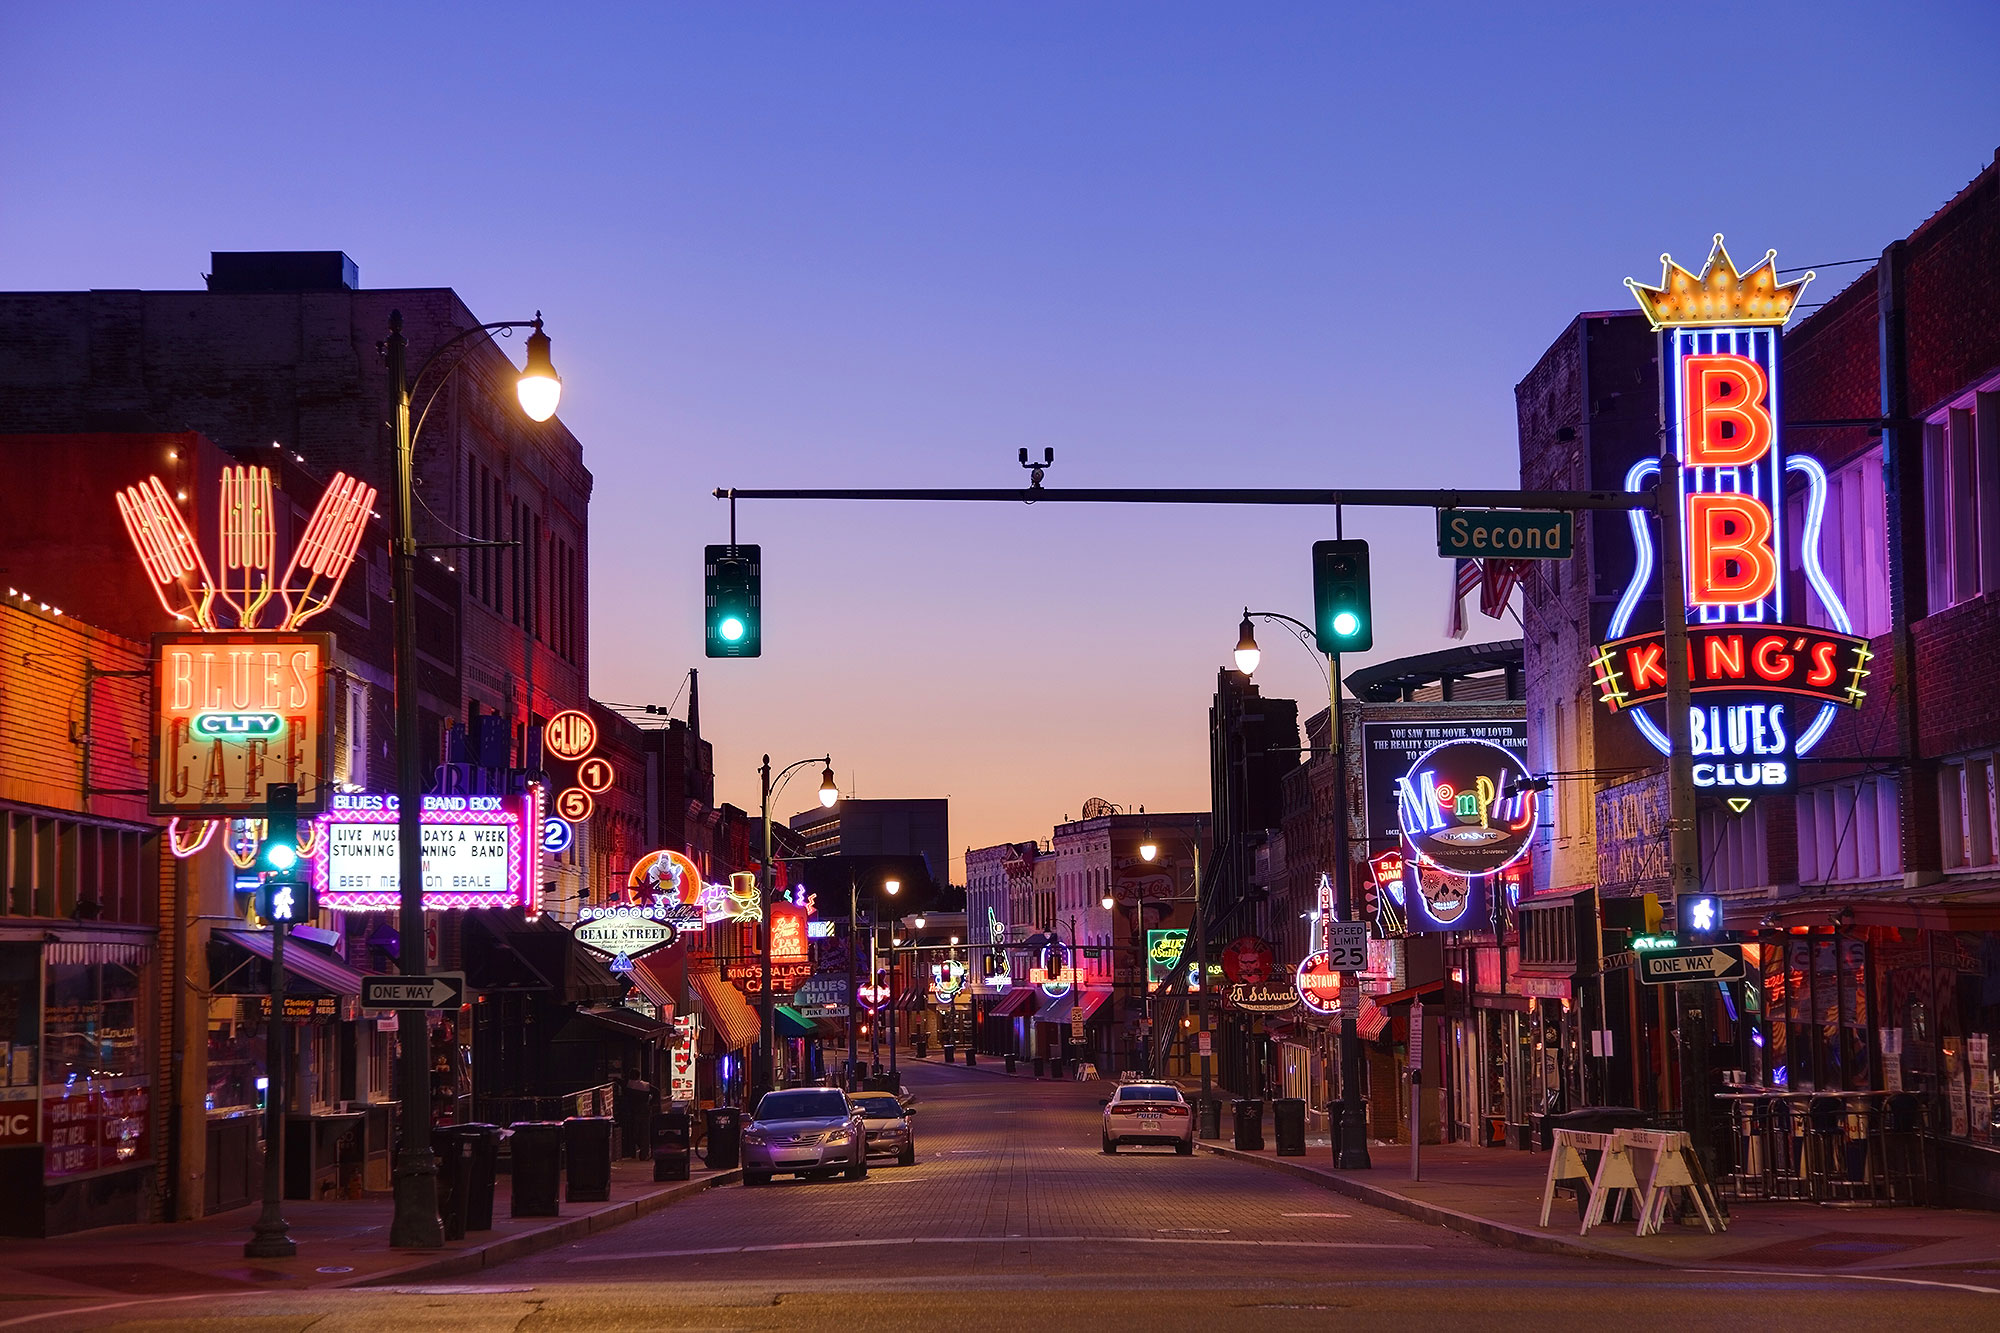 4. Memphis, Tennessee